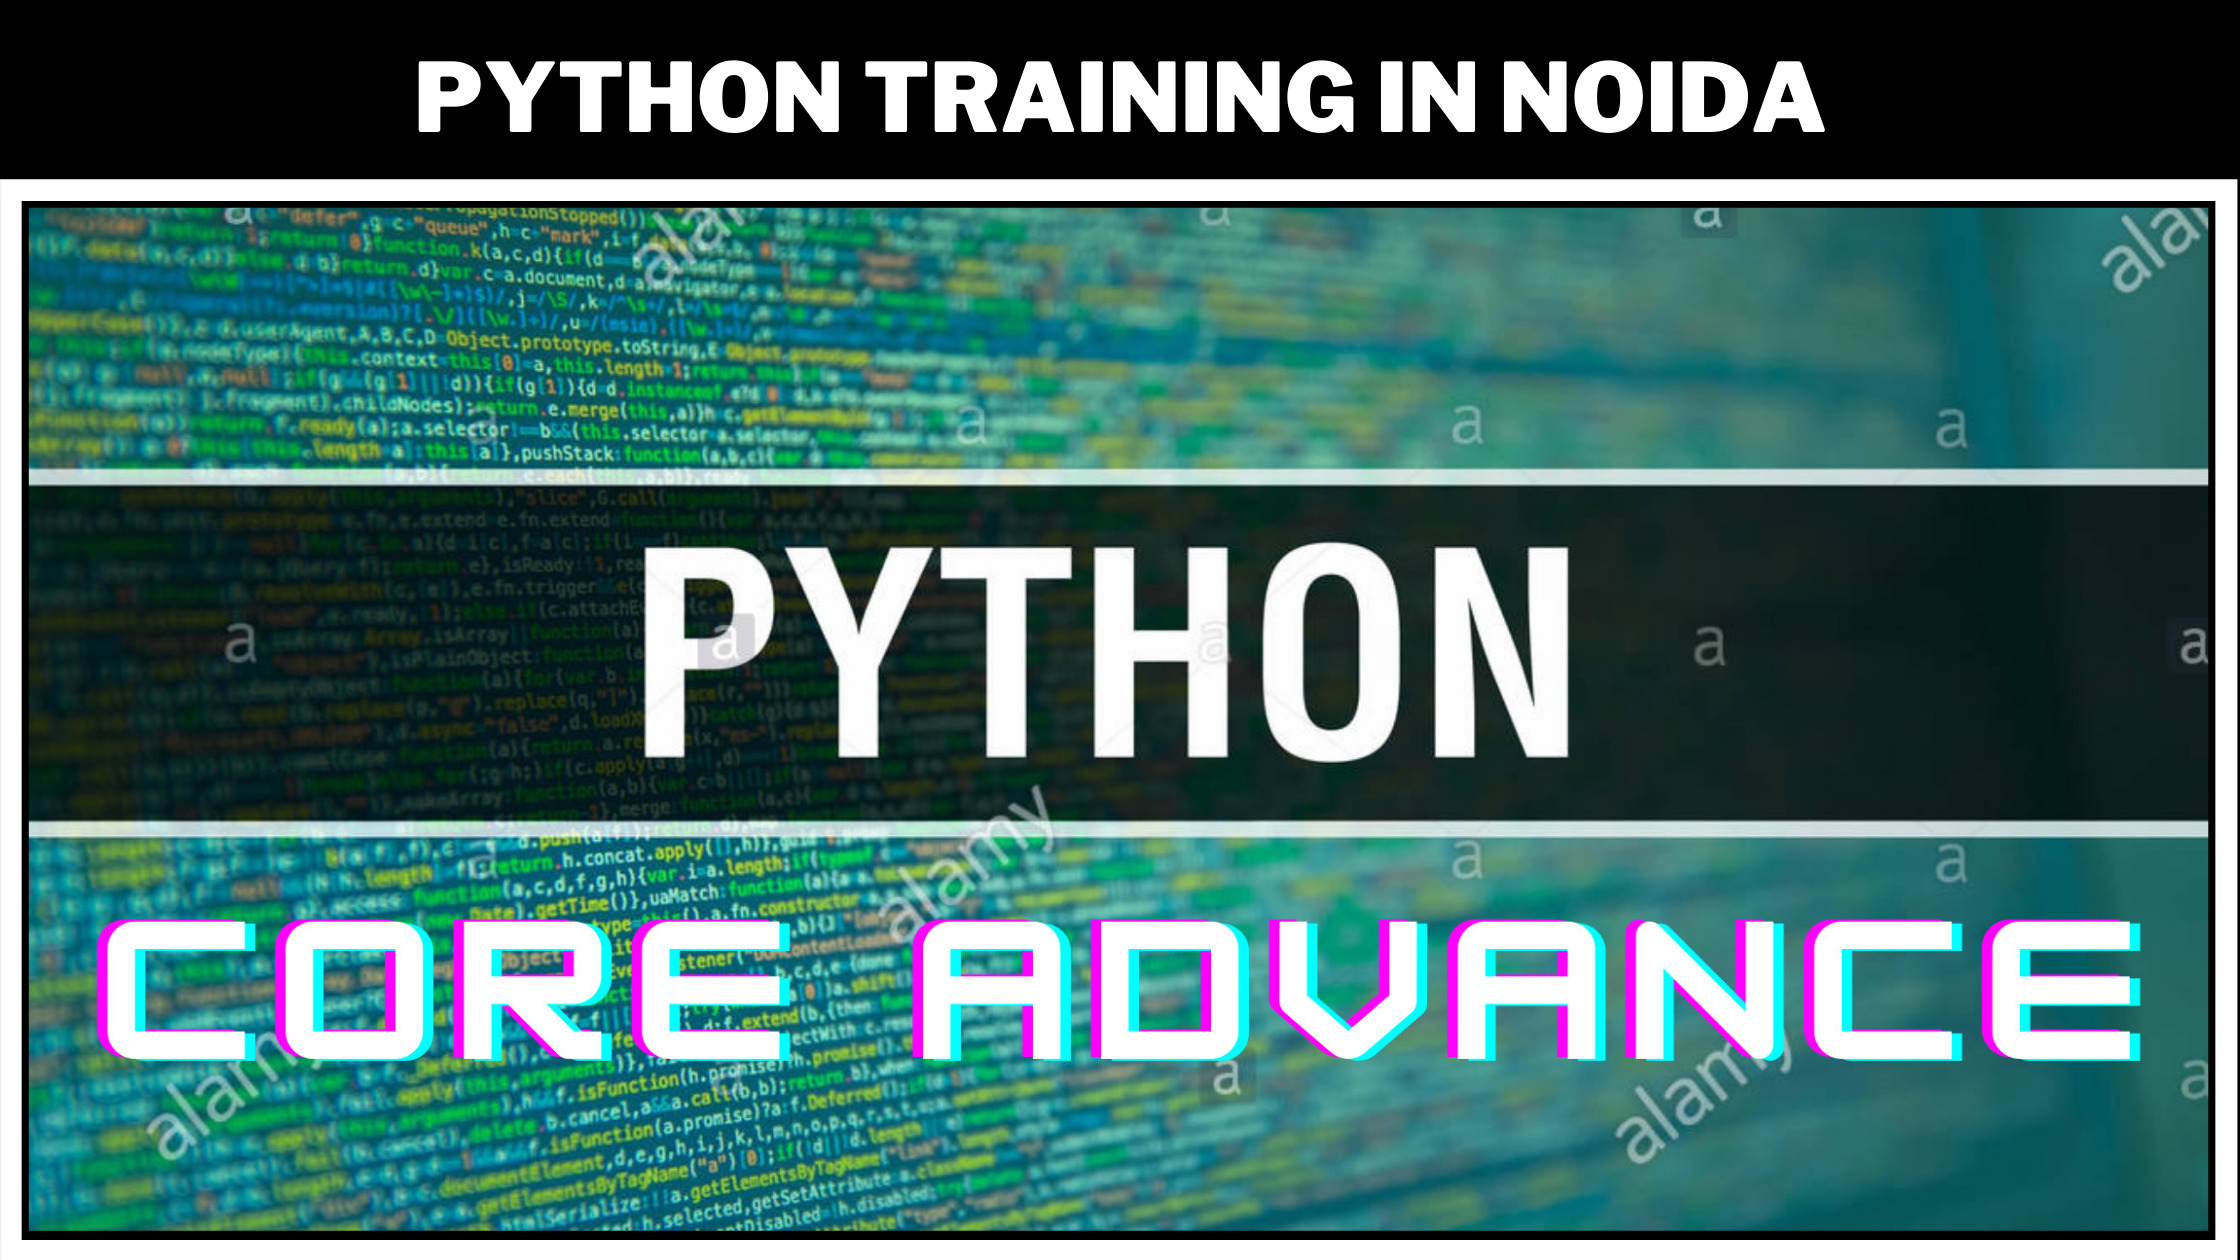 python_training_in_noida-background.jpeg